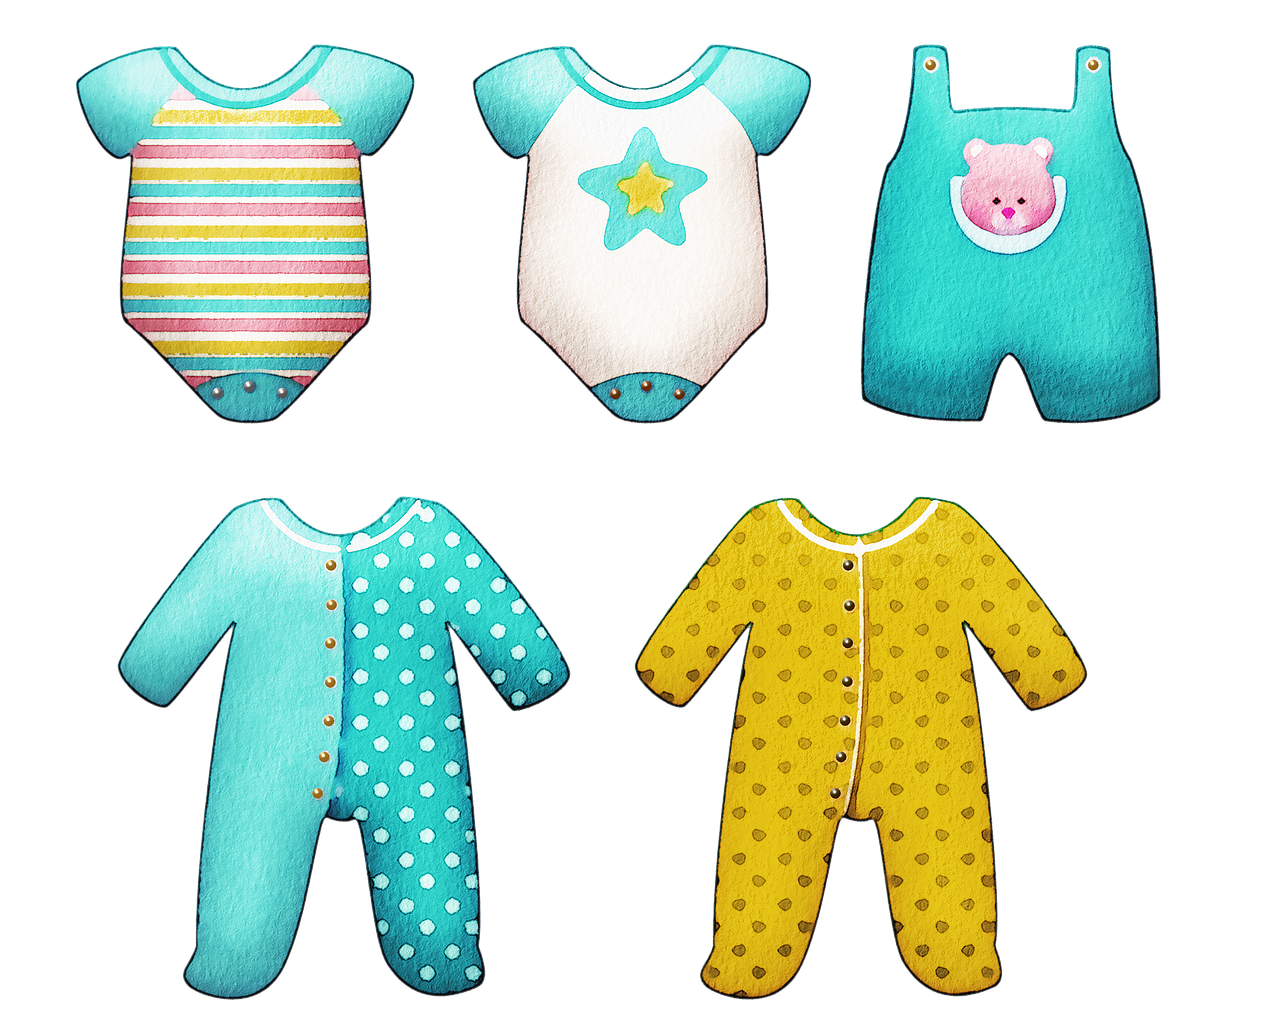 Watercolor Baby Clothes - Free image on Pixabay